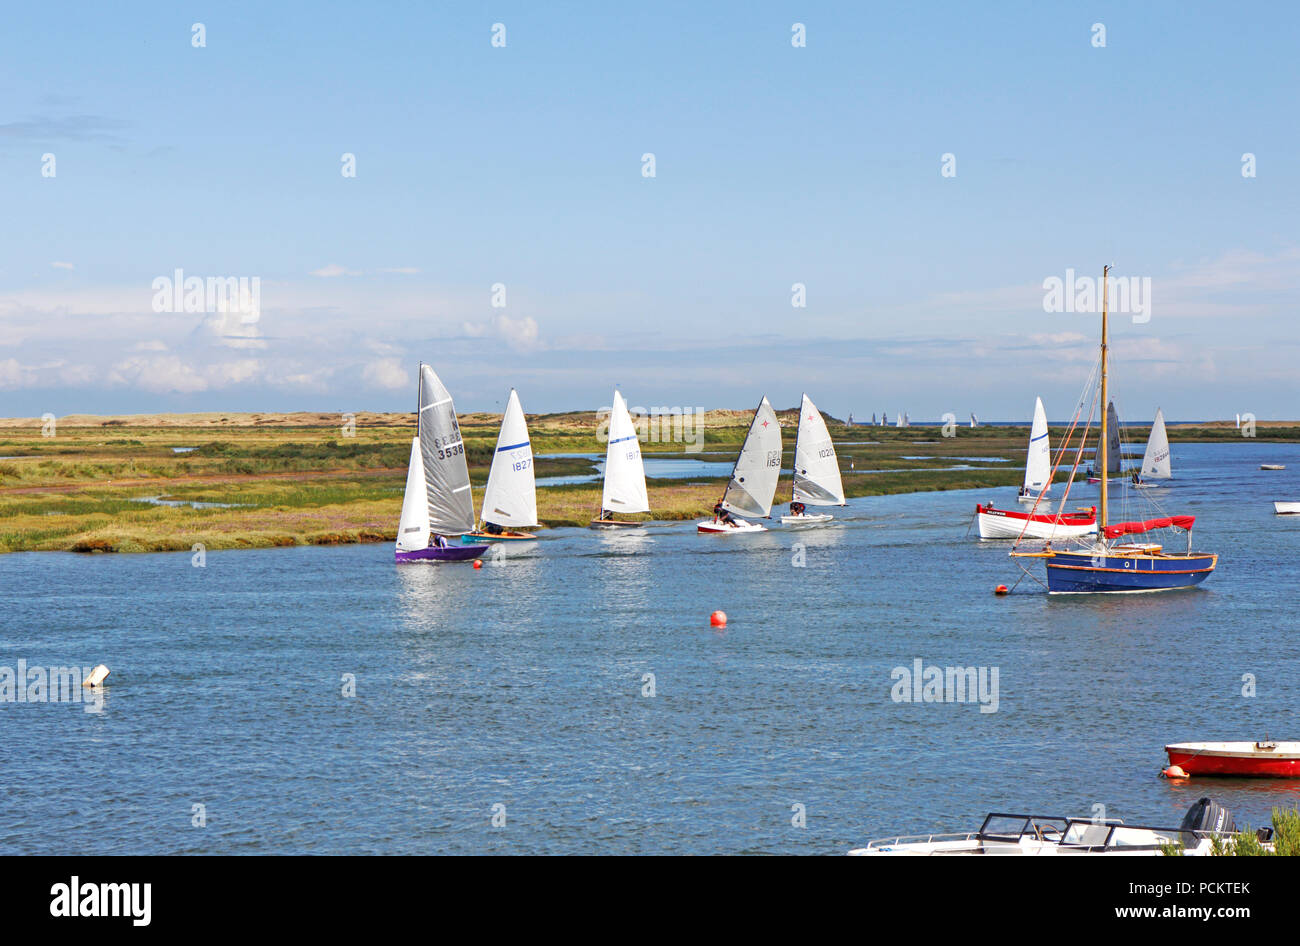 A group of sailing dinghies in Overy Creek heading in on a high tide to Burnham Overy Staithe, Norfolk, England, United Kingdom, Europe. - Stock Image